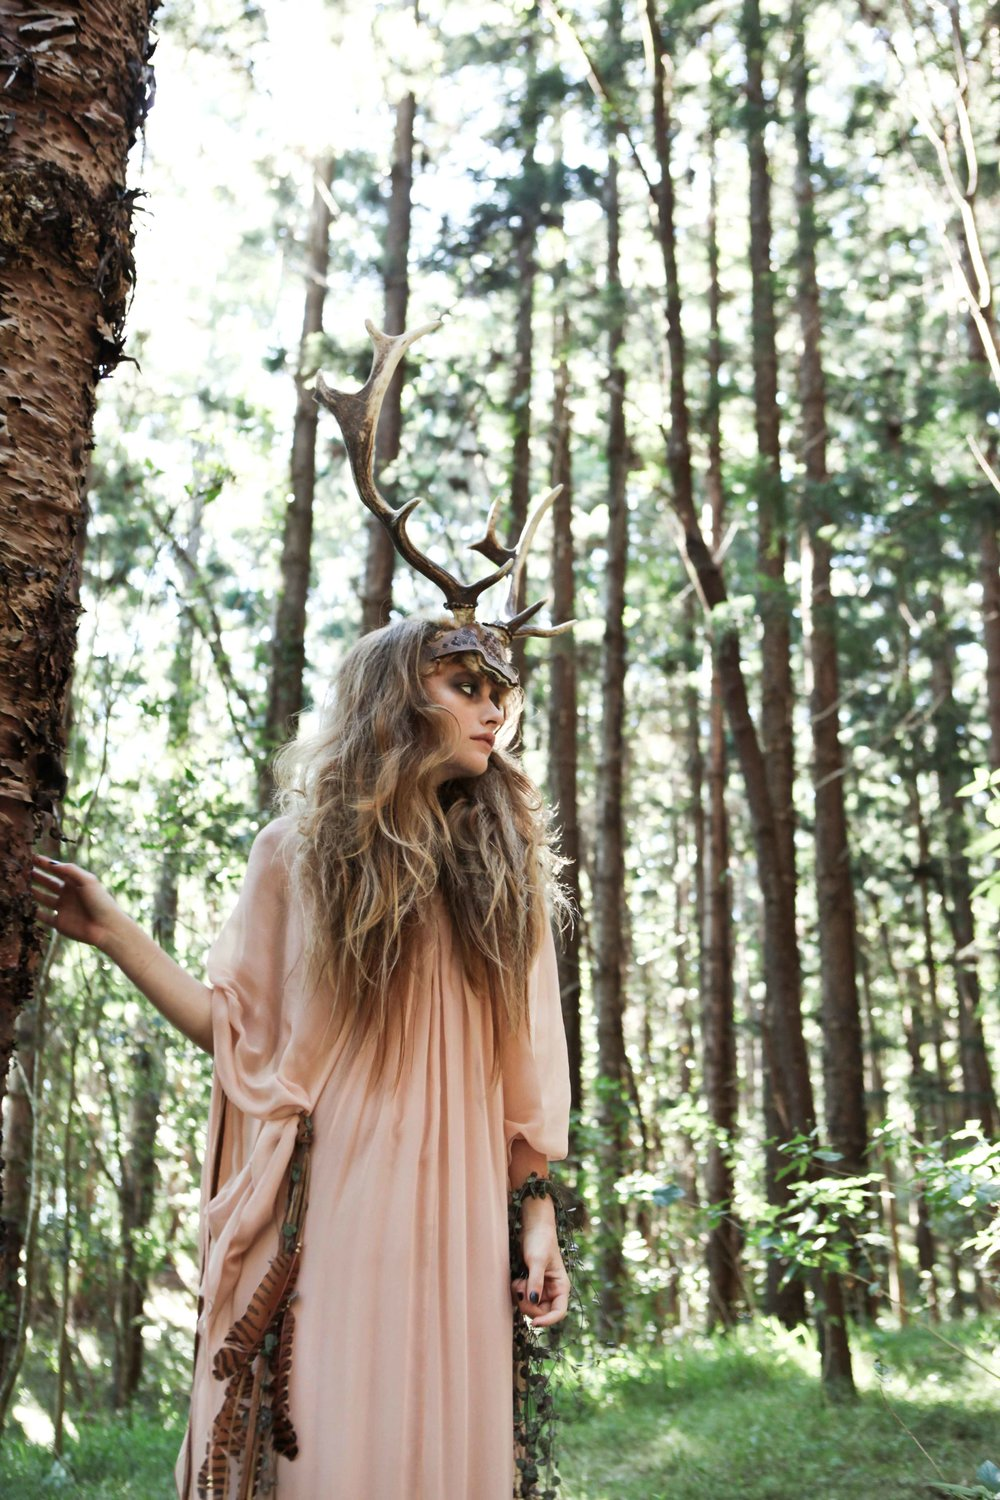 Buffalo Girl iconic deer antlers were made for Angus Stone's 'Monsters' music video. Click  here  to watch the original video!